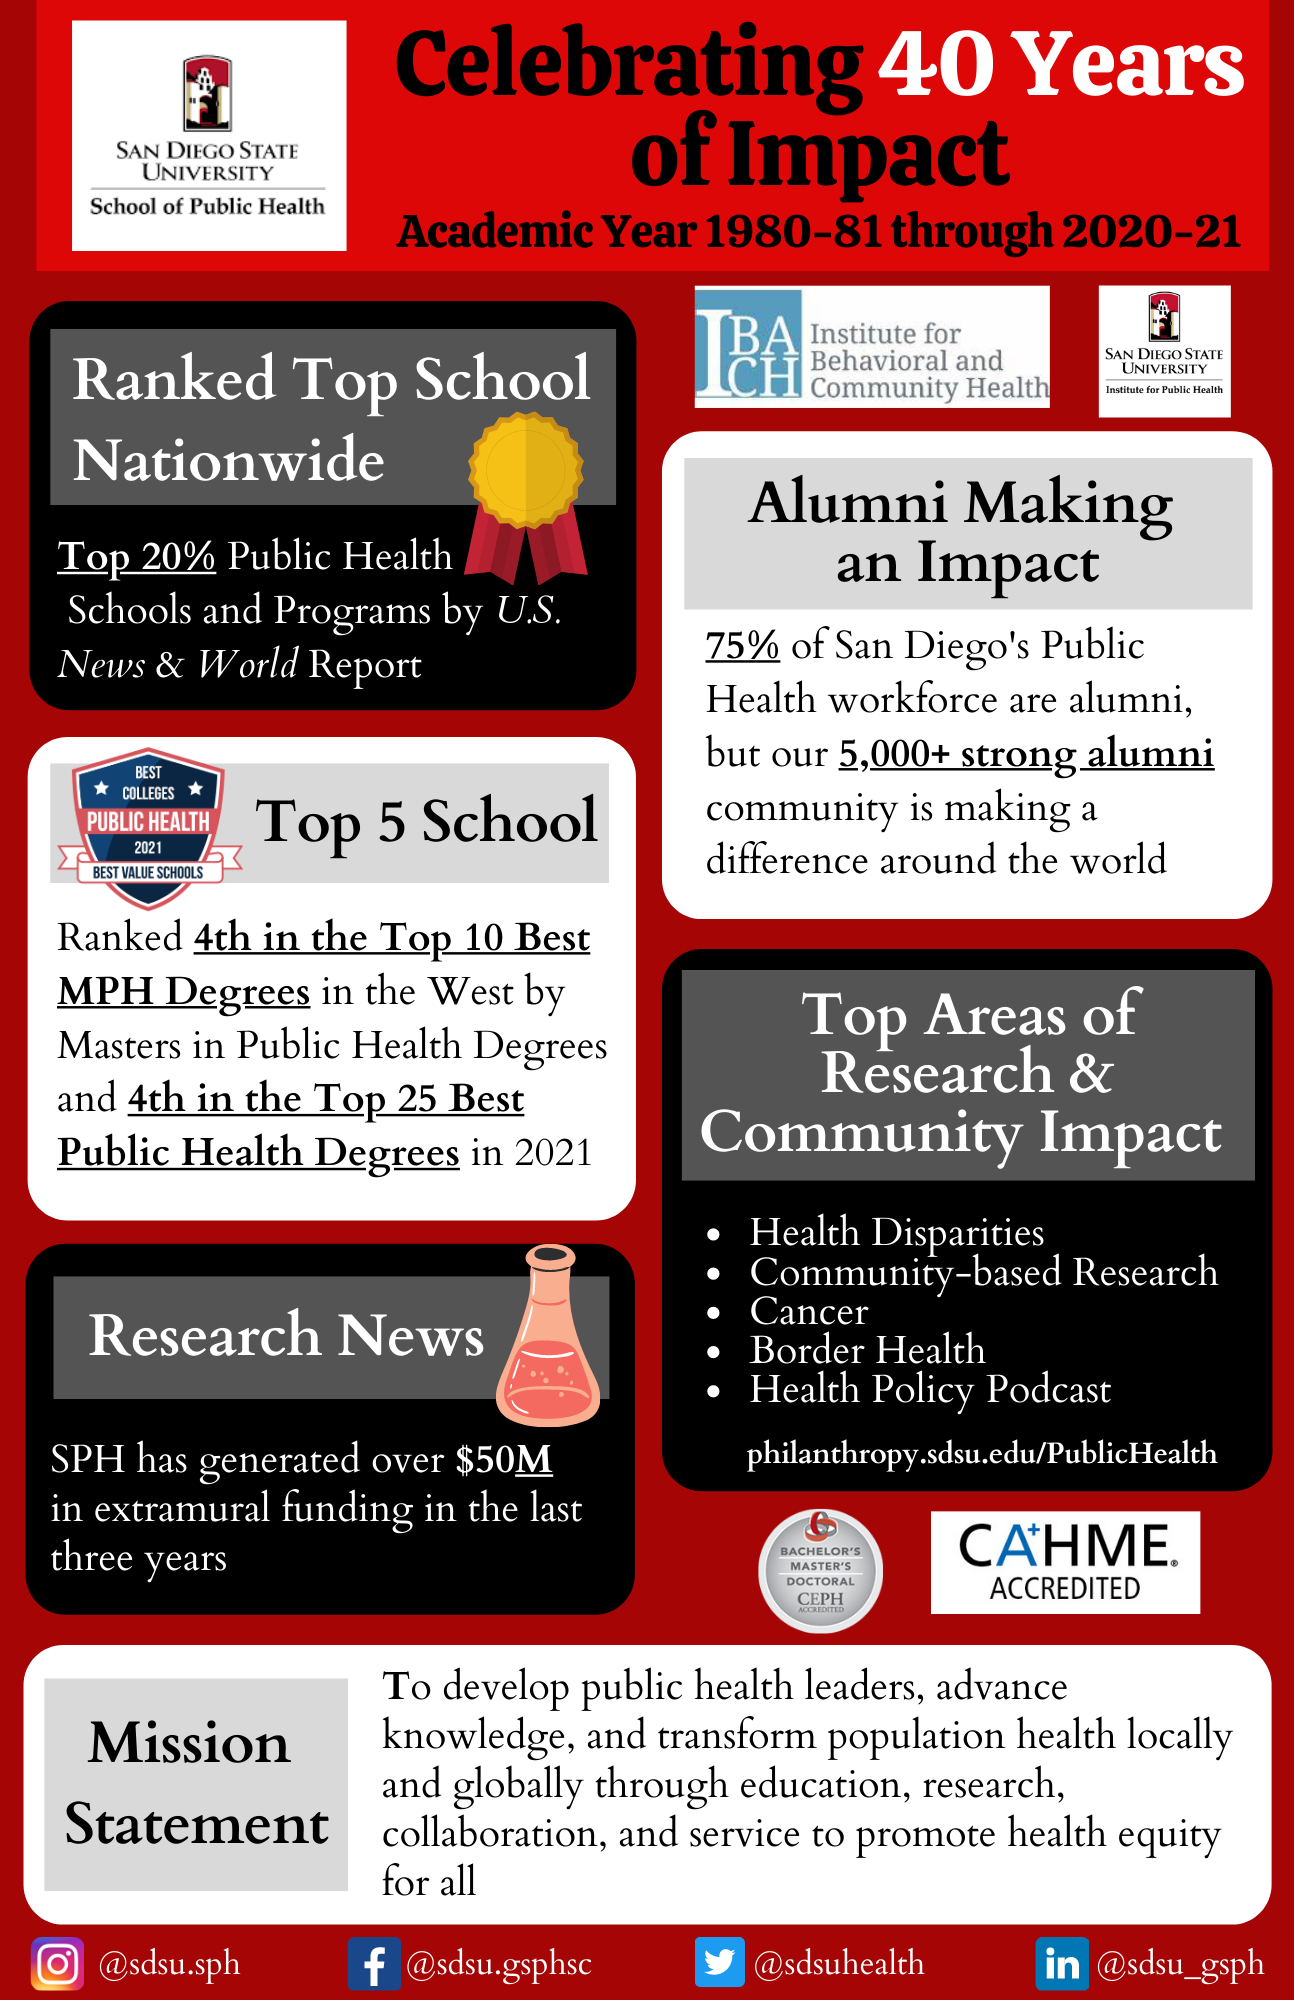 Celebrating 40 Years of Impact Academic Year 1980-81 through 2020-21 Ranked Top School Nationwide. Top 20% Public Health School and Programs by US News & World Report. Alumni Making an Impact. 75% of San Diego's Public Health workforce are alumni, but our 5,000+ string alumni community is making a difference around the world. Top 5 School. Ranked 4th in the Top 10 best MPH Degrees in the West by Masters in Public Health Degrees and 4th in the Top 25 Best Public Health Degrees in 2021 Top Areas of Research and Community Impact: Health Disparities, Community-based Research, Cancer, Border Health,& Health Policy Podcast. Missions Statement: to develop public health leaders, advance knowledge, and transform population health locally and globally through education, research, collaboration, and service to promote health equity for all